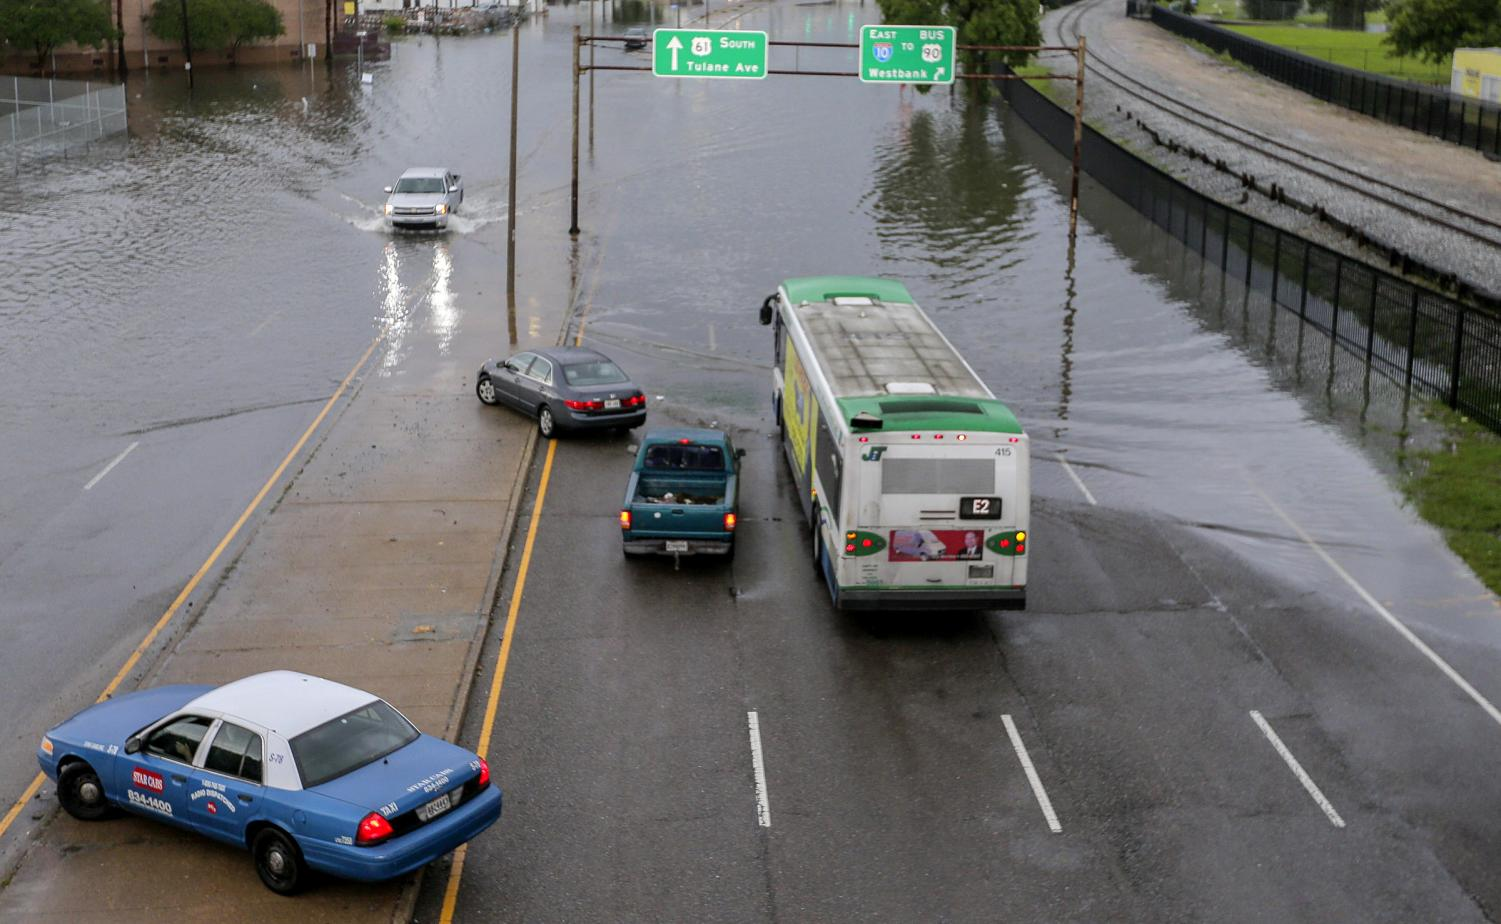 Parts of Airline Highway is covered with water in New Orleans Sunday, May 12, 2019. New Orleans residents awoke to flooded streets Sunday and the Mississippi Highway Patrol closed part of a highway due to heavy rains that also may have contributed to a freight train derailment.